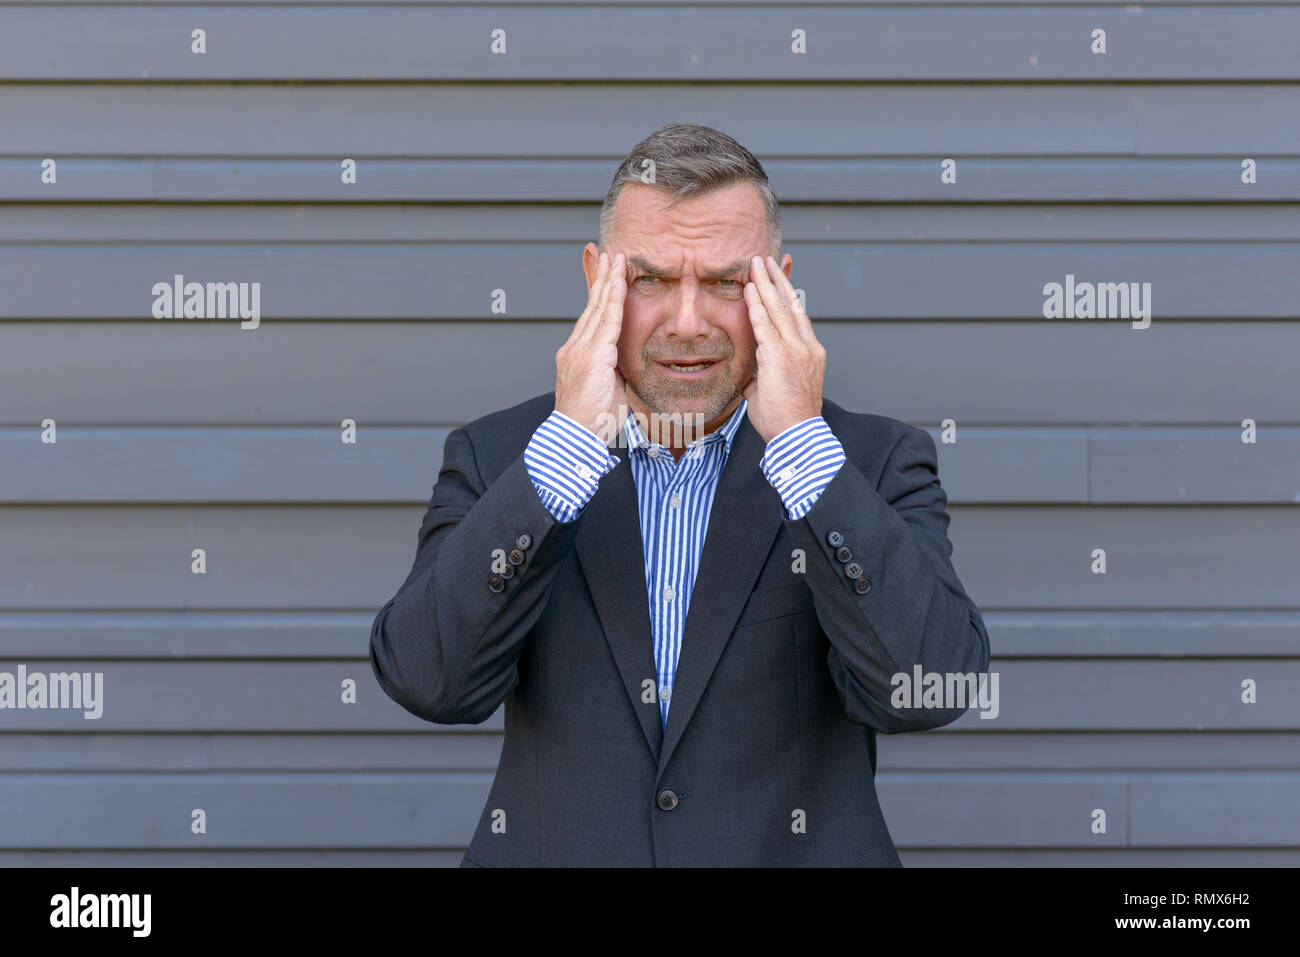 Stressed businessman, or suffering from a headache, standing with his hands to his temples grimacing against a grey exterior wall - Stock Image